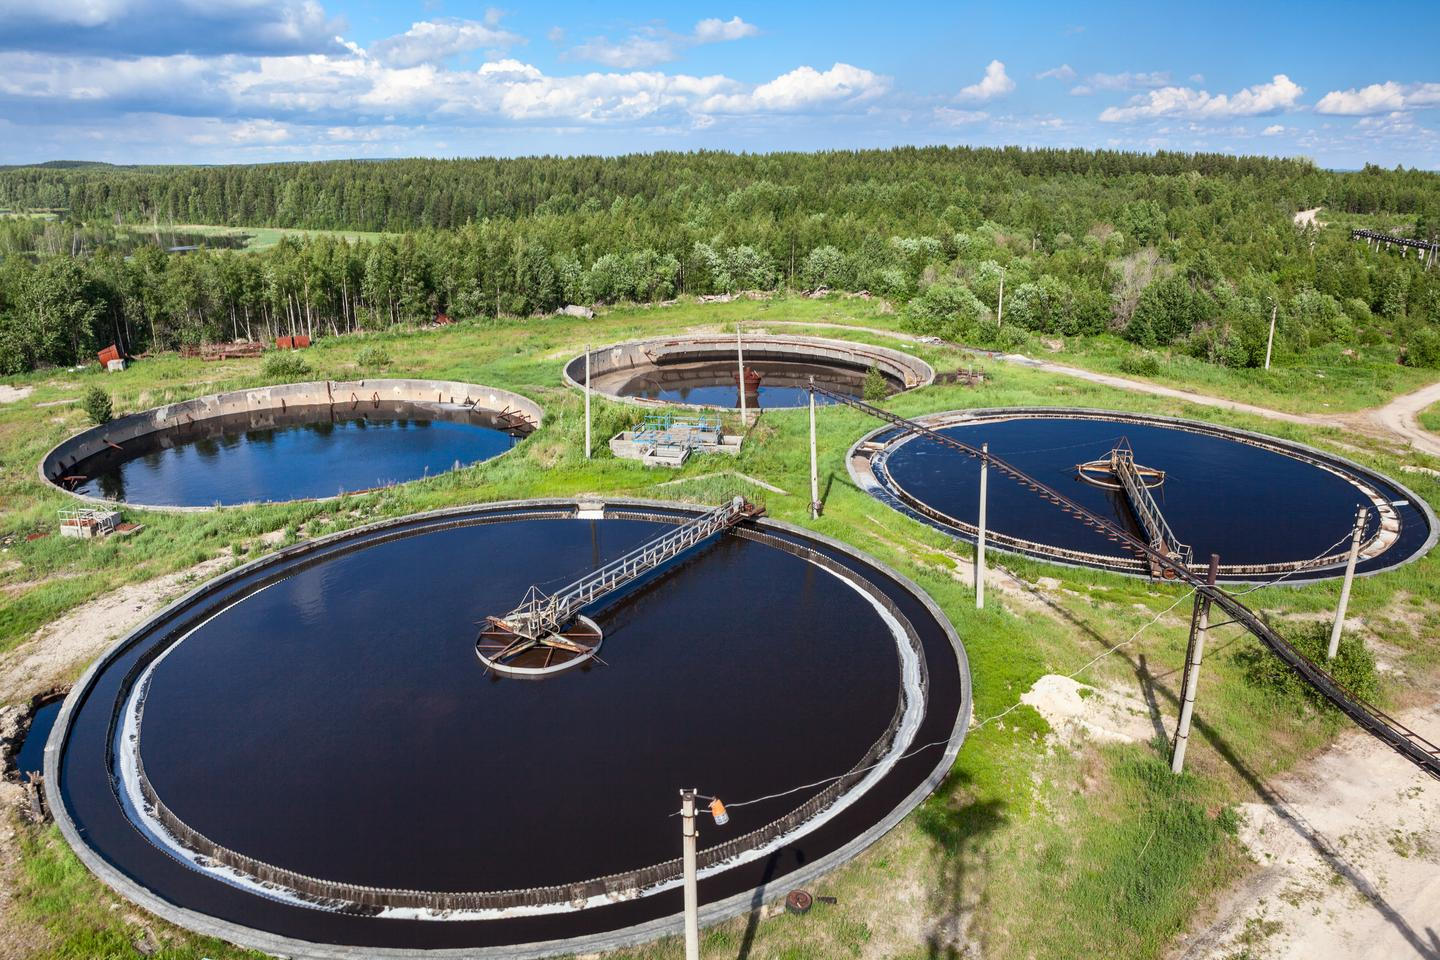 A new RMIT process could turn sewage and wastewater into hydrogen fuel and valuable biochar, potentially eliminating emissions from the process while generating green energy